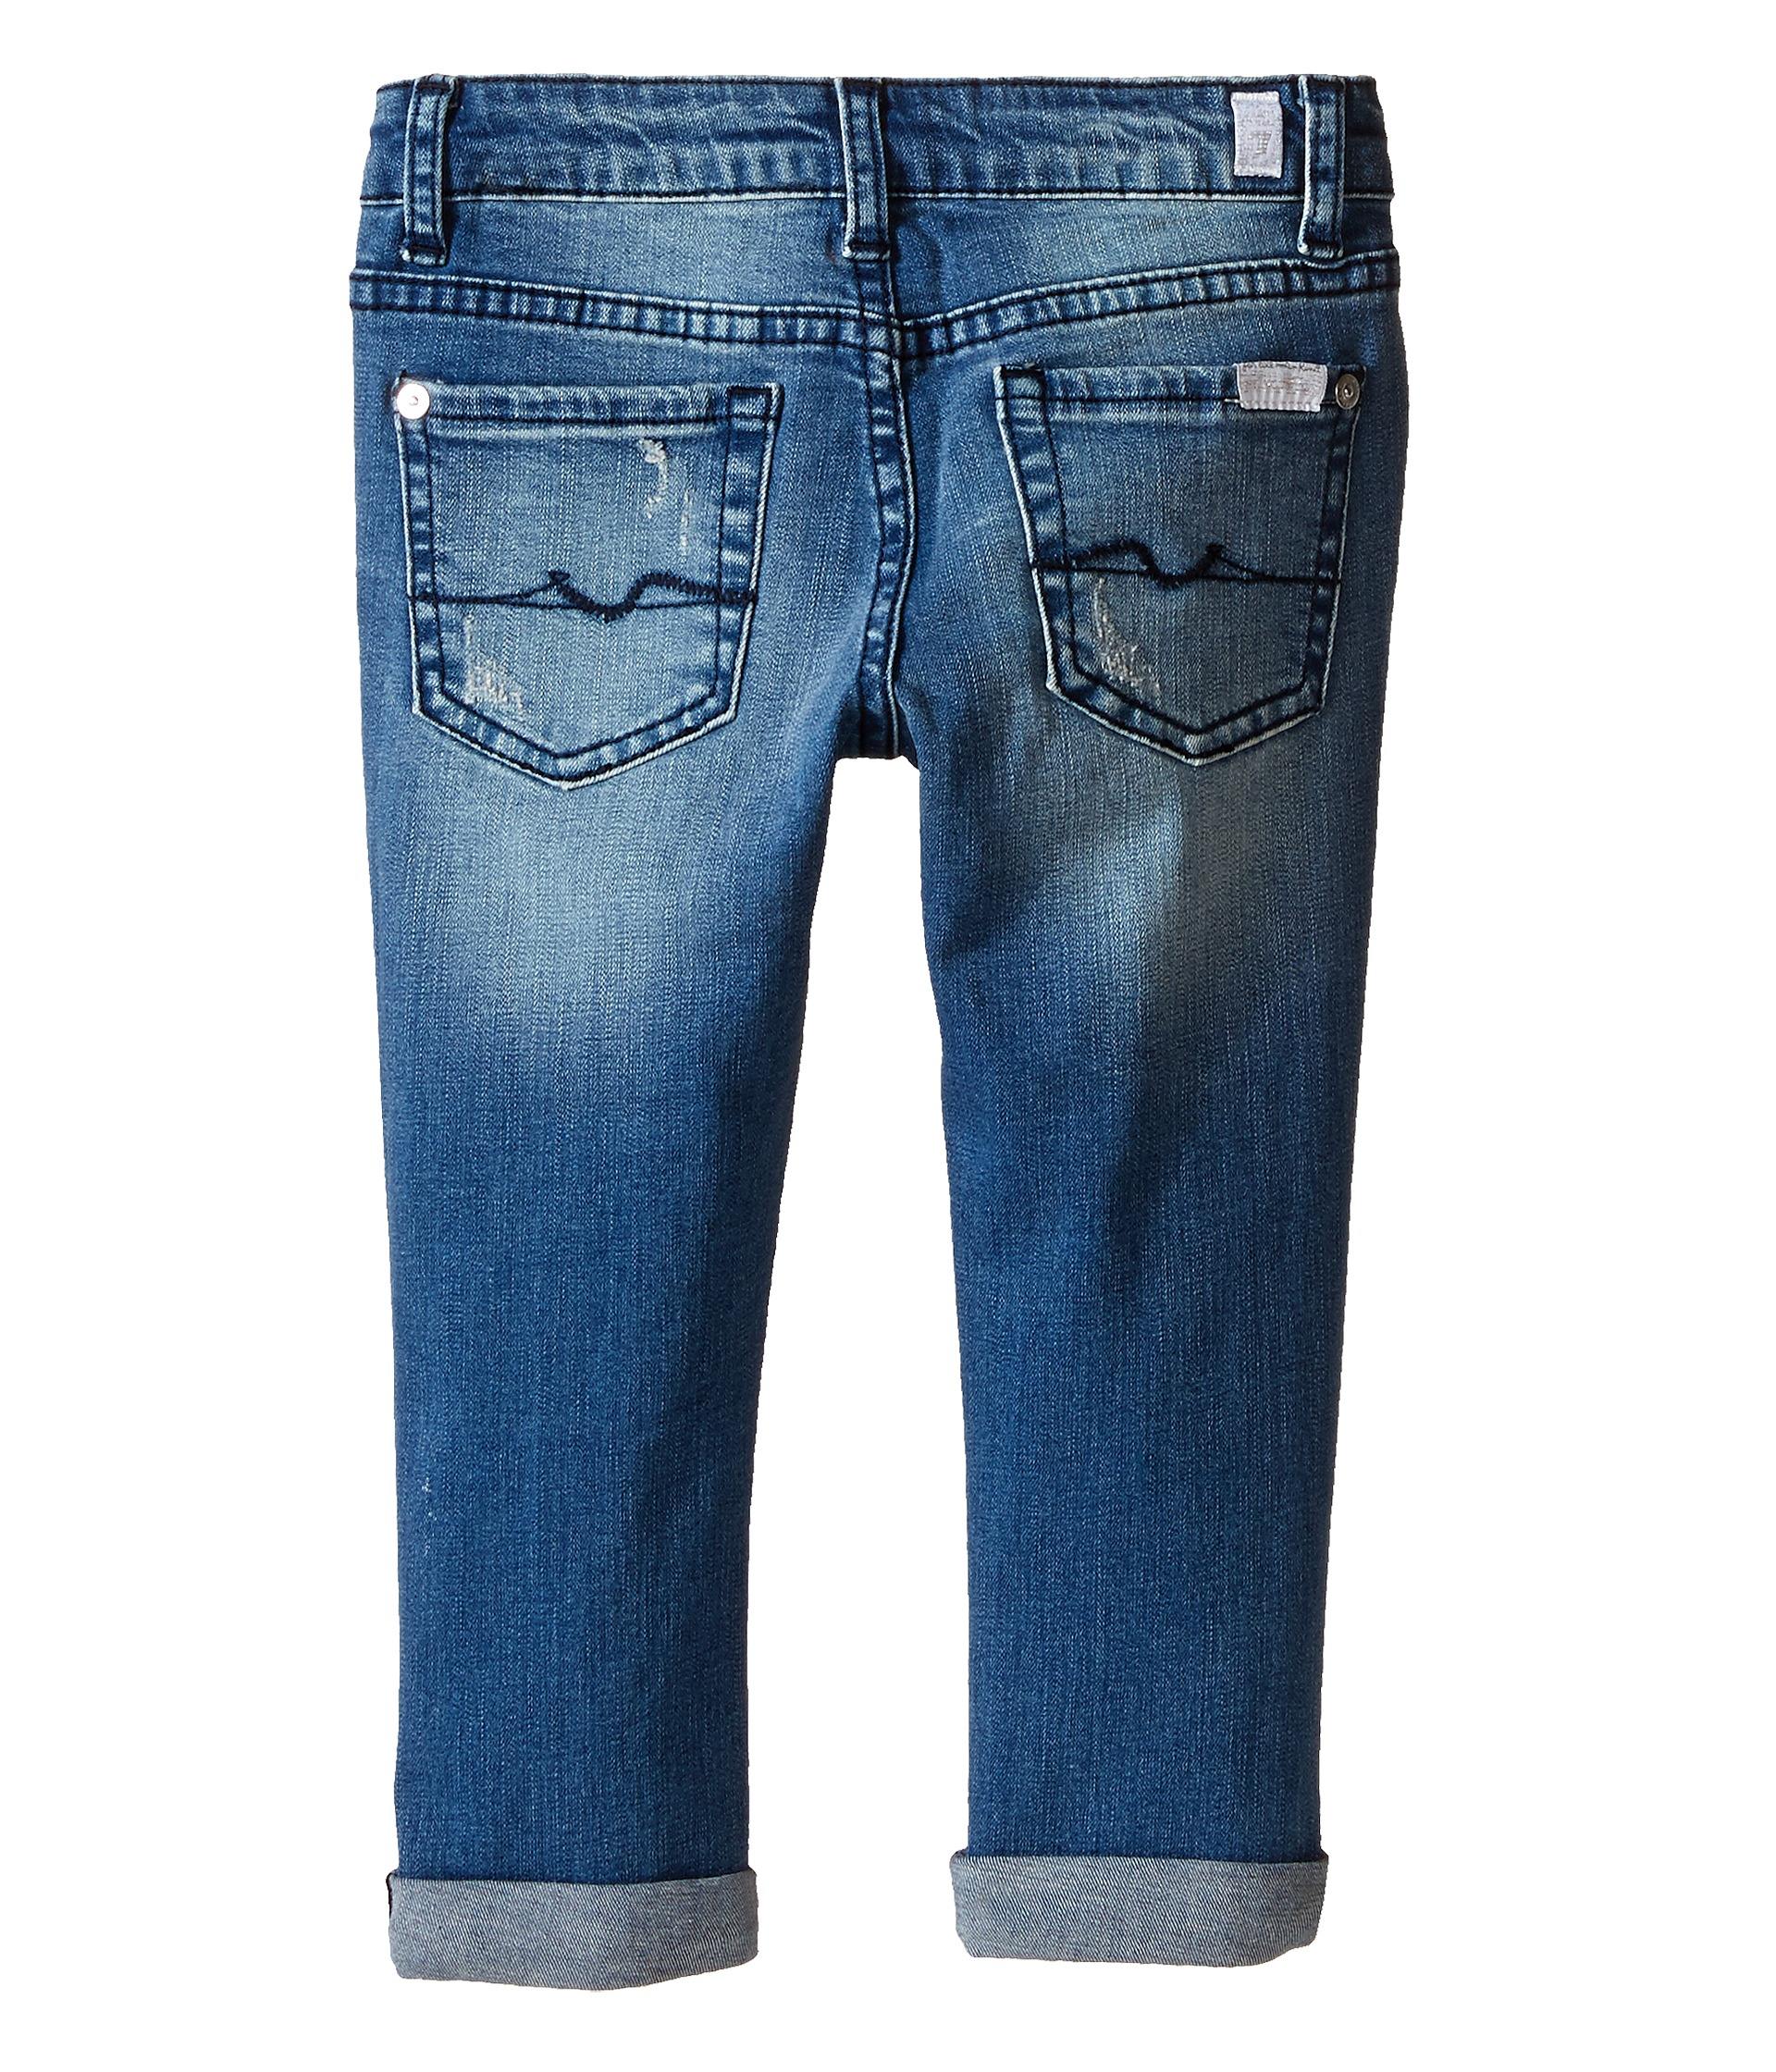 Free shipping BOTH ways on levis kids destructed boyfriend jeans big kids, from our vast selection of styles. Fast delivery, and 24/7/ real-person service with a smile. Click or call